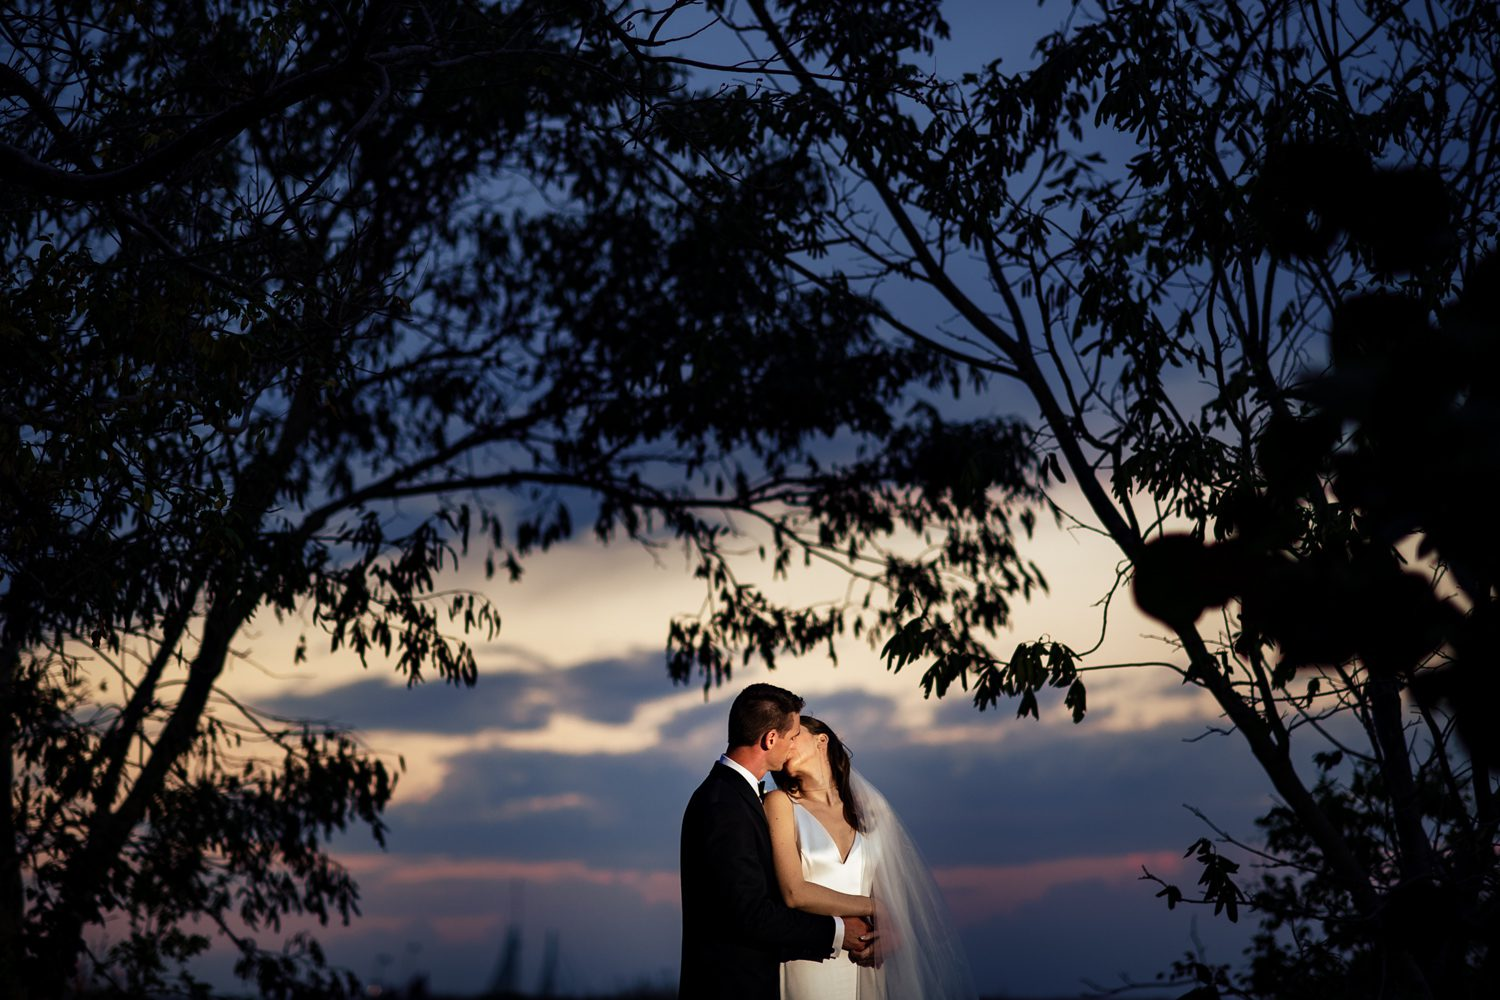 sunset kiss between bride and groom